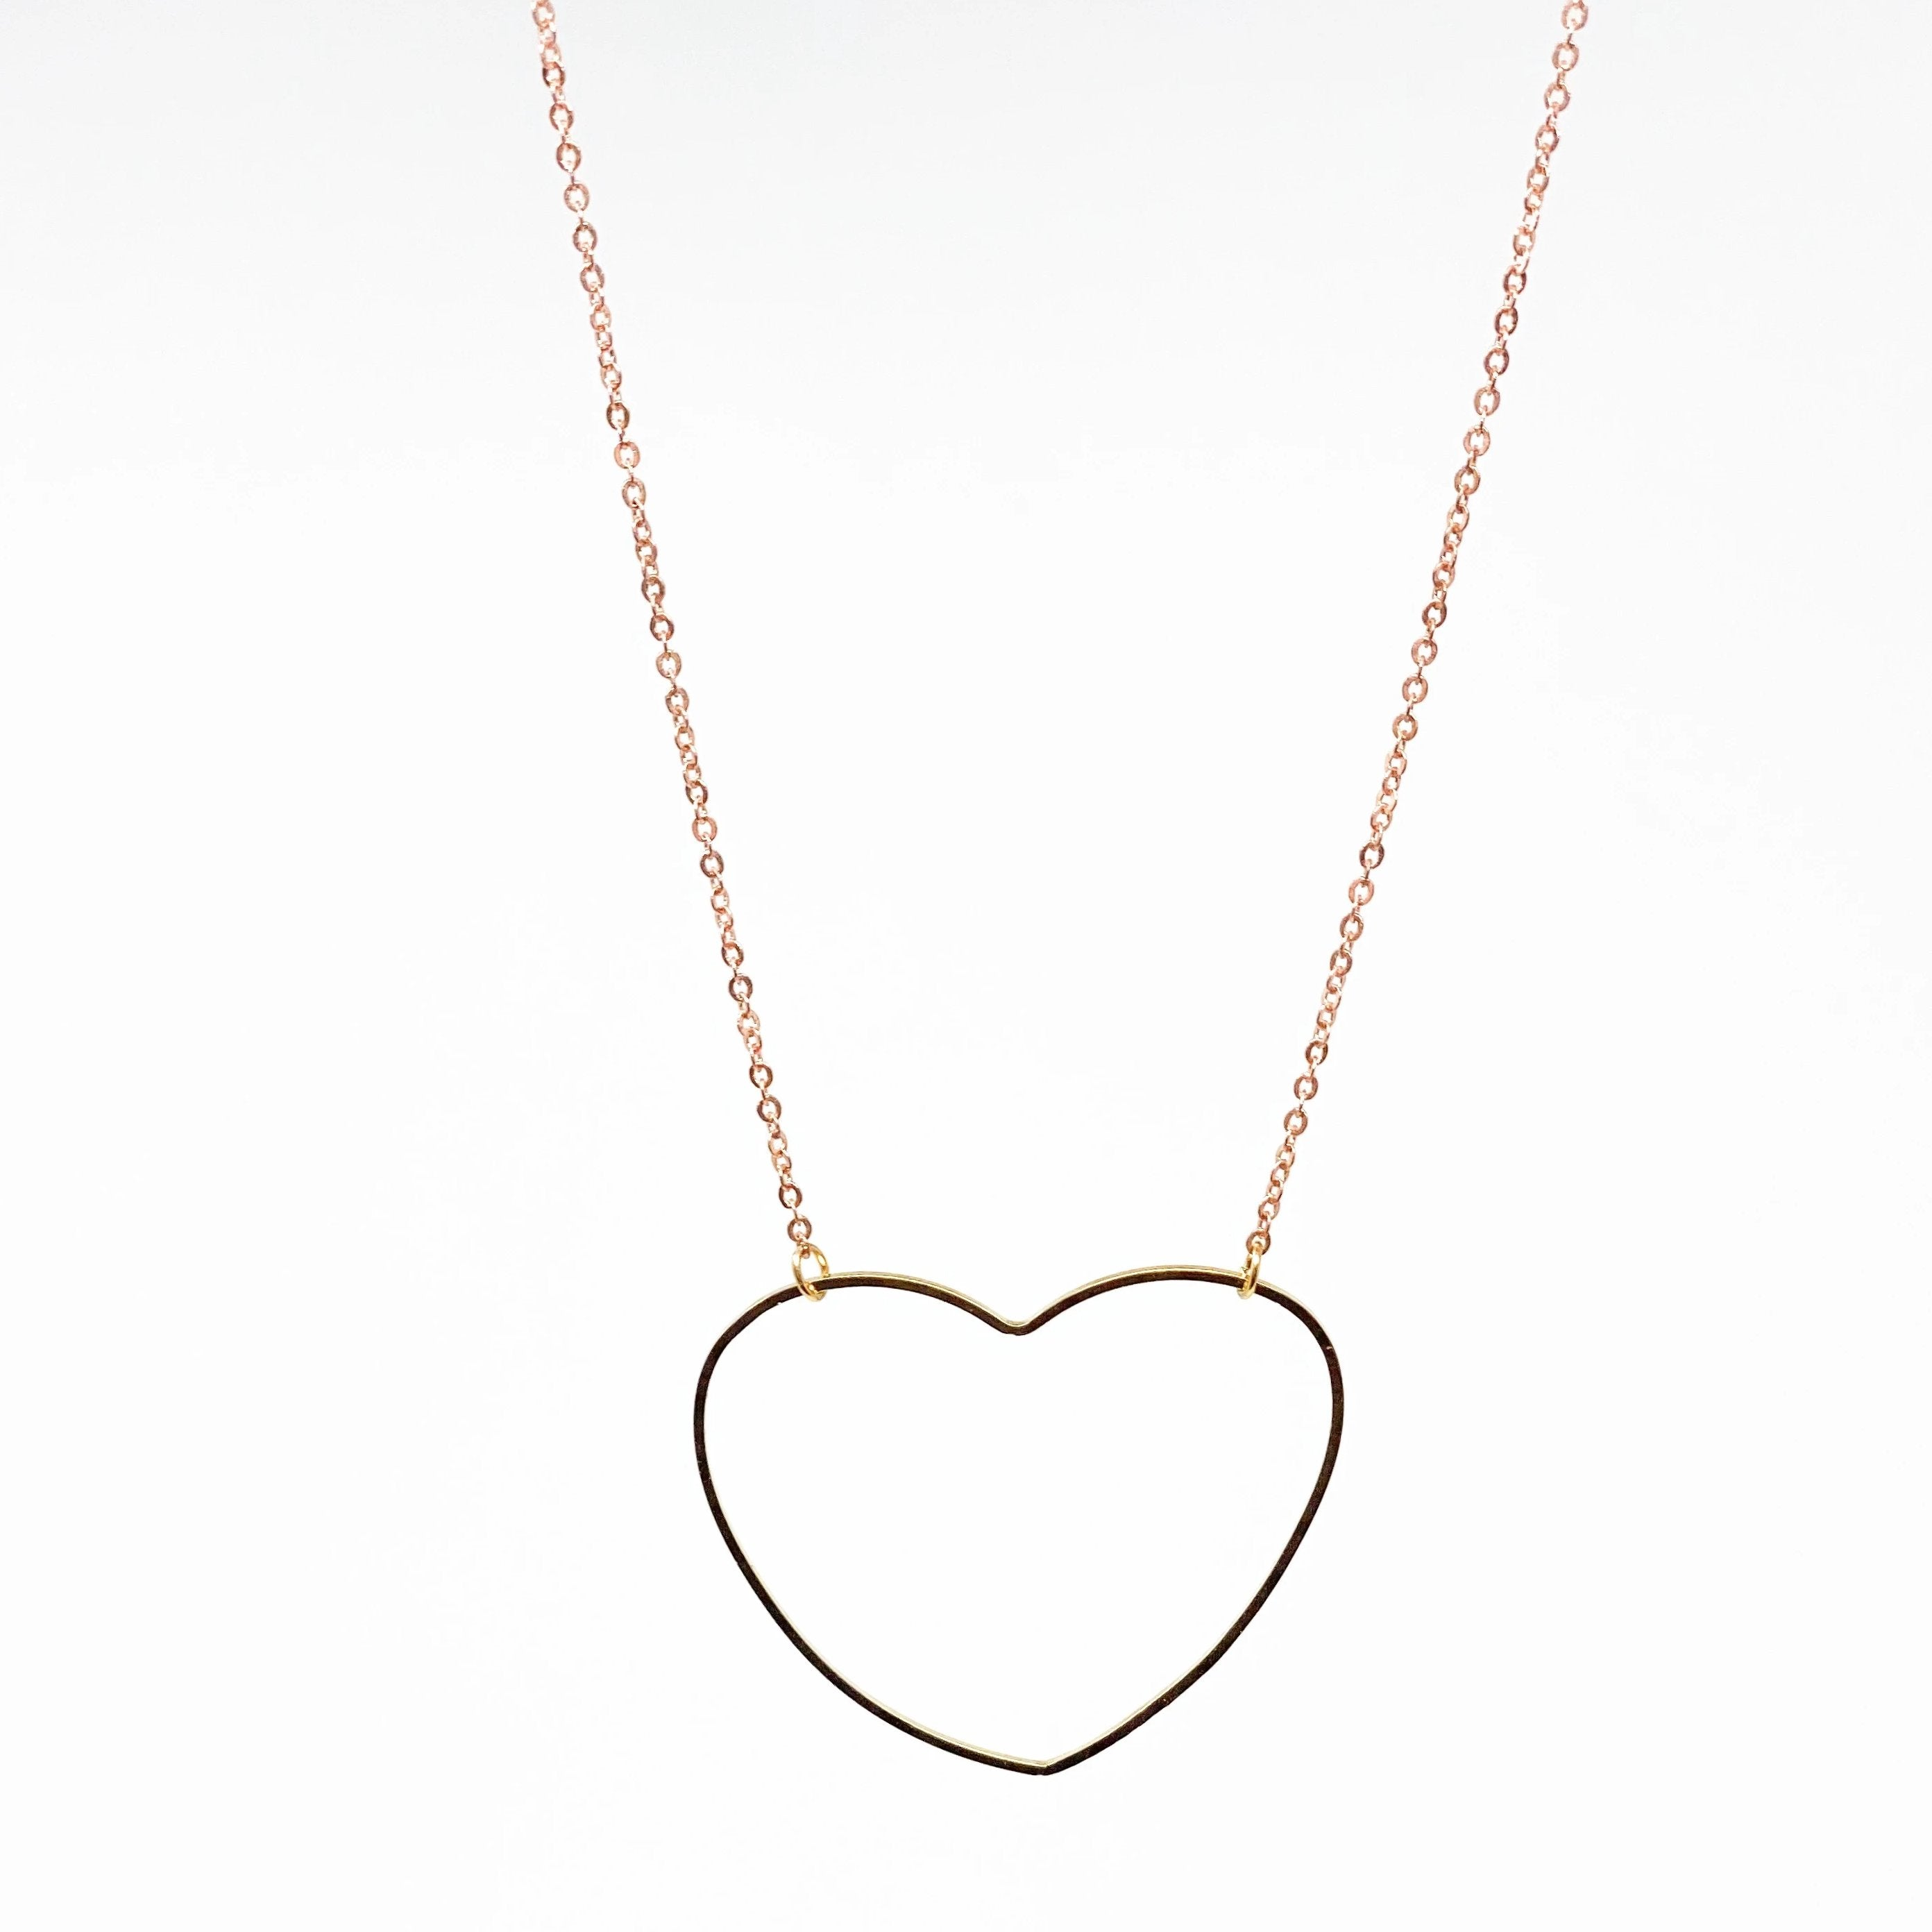 HEART Necklace - Twisted Silver